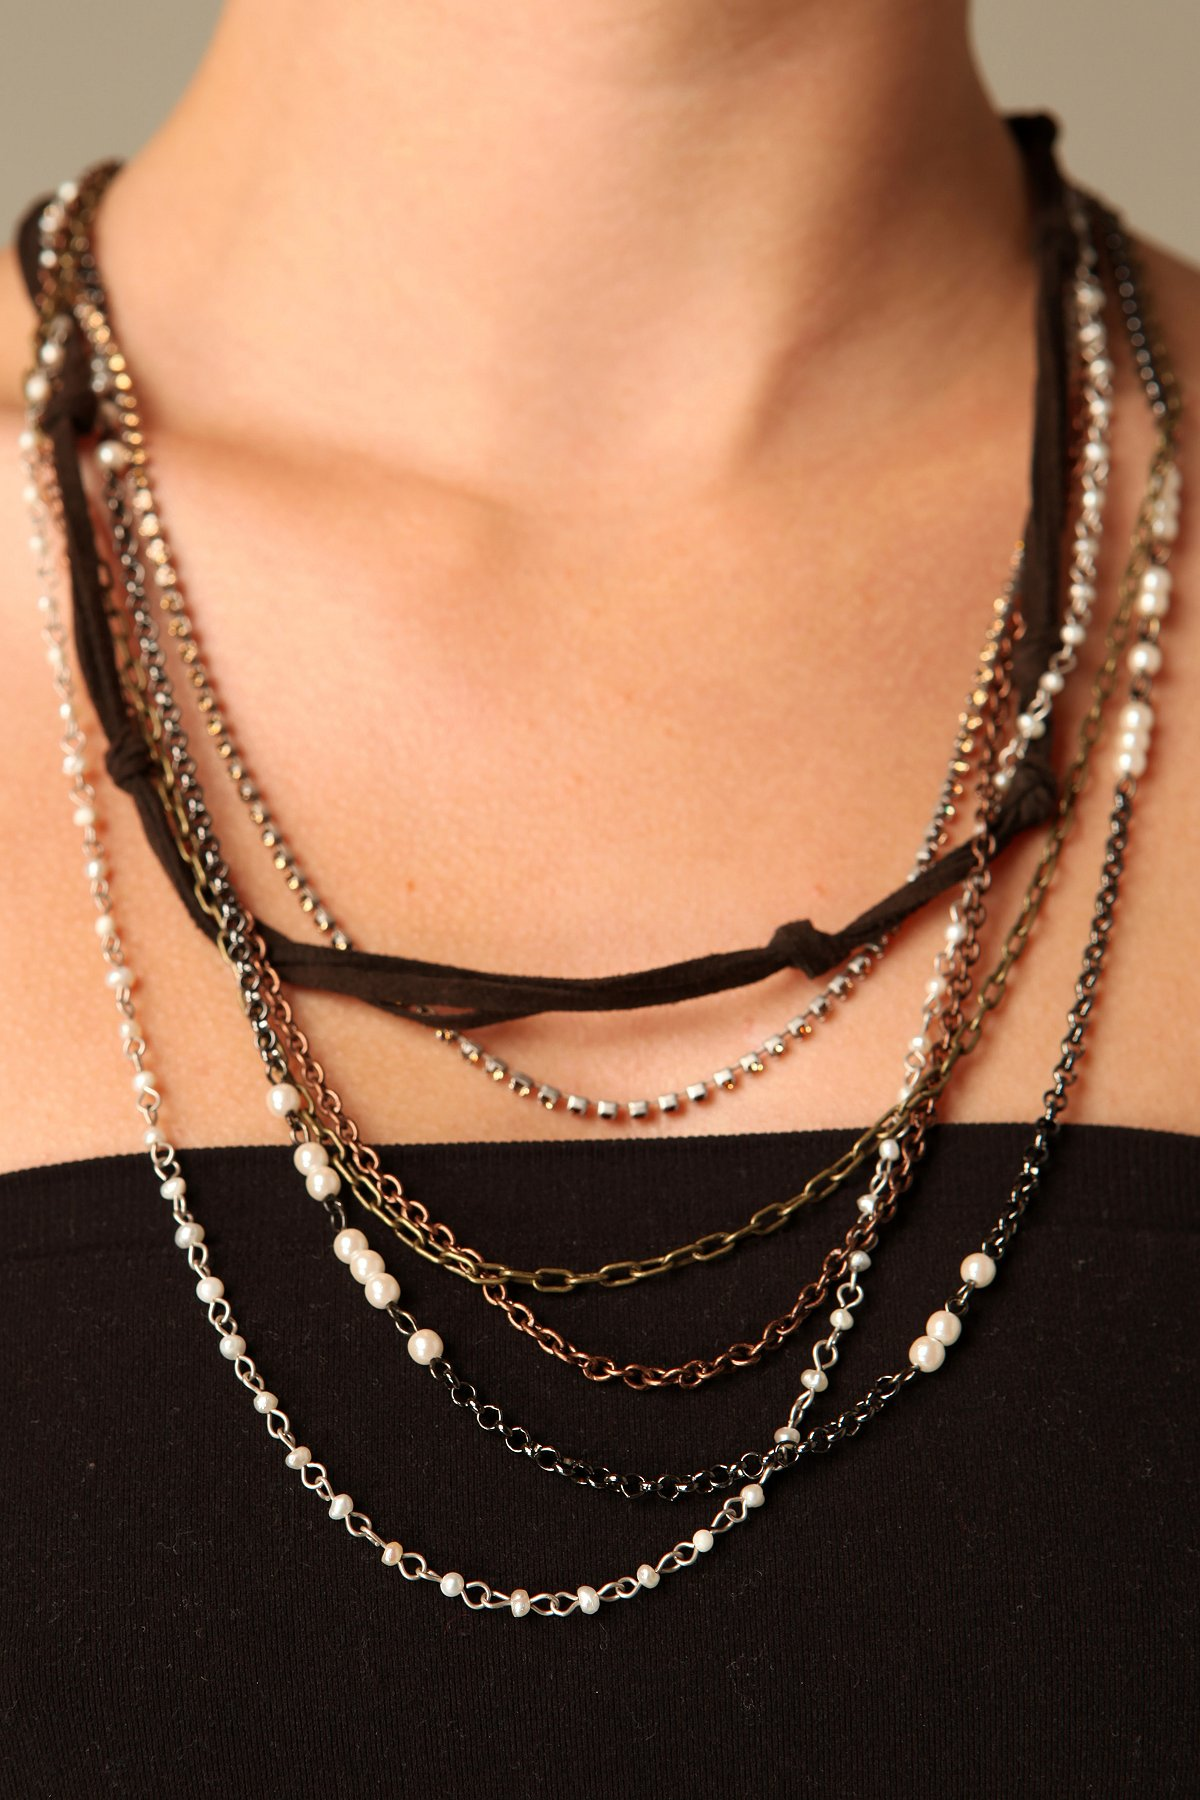 Mixed Pearls Layering Necklace